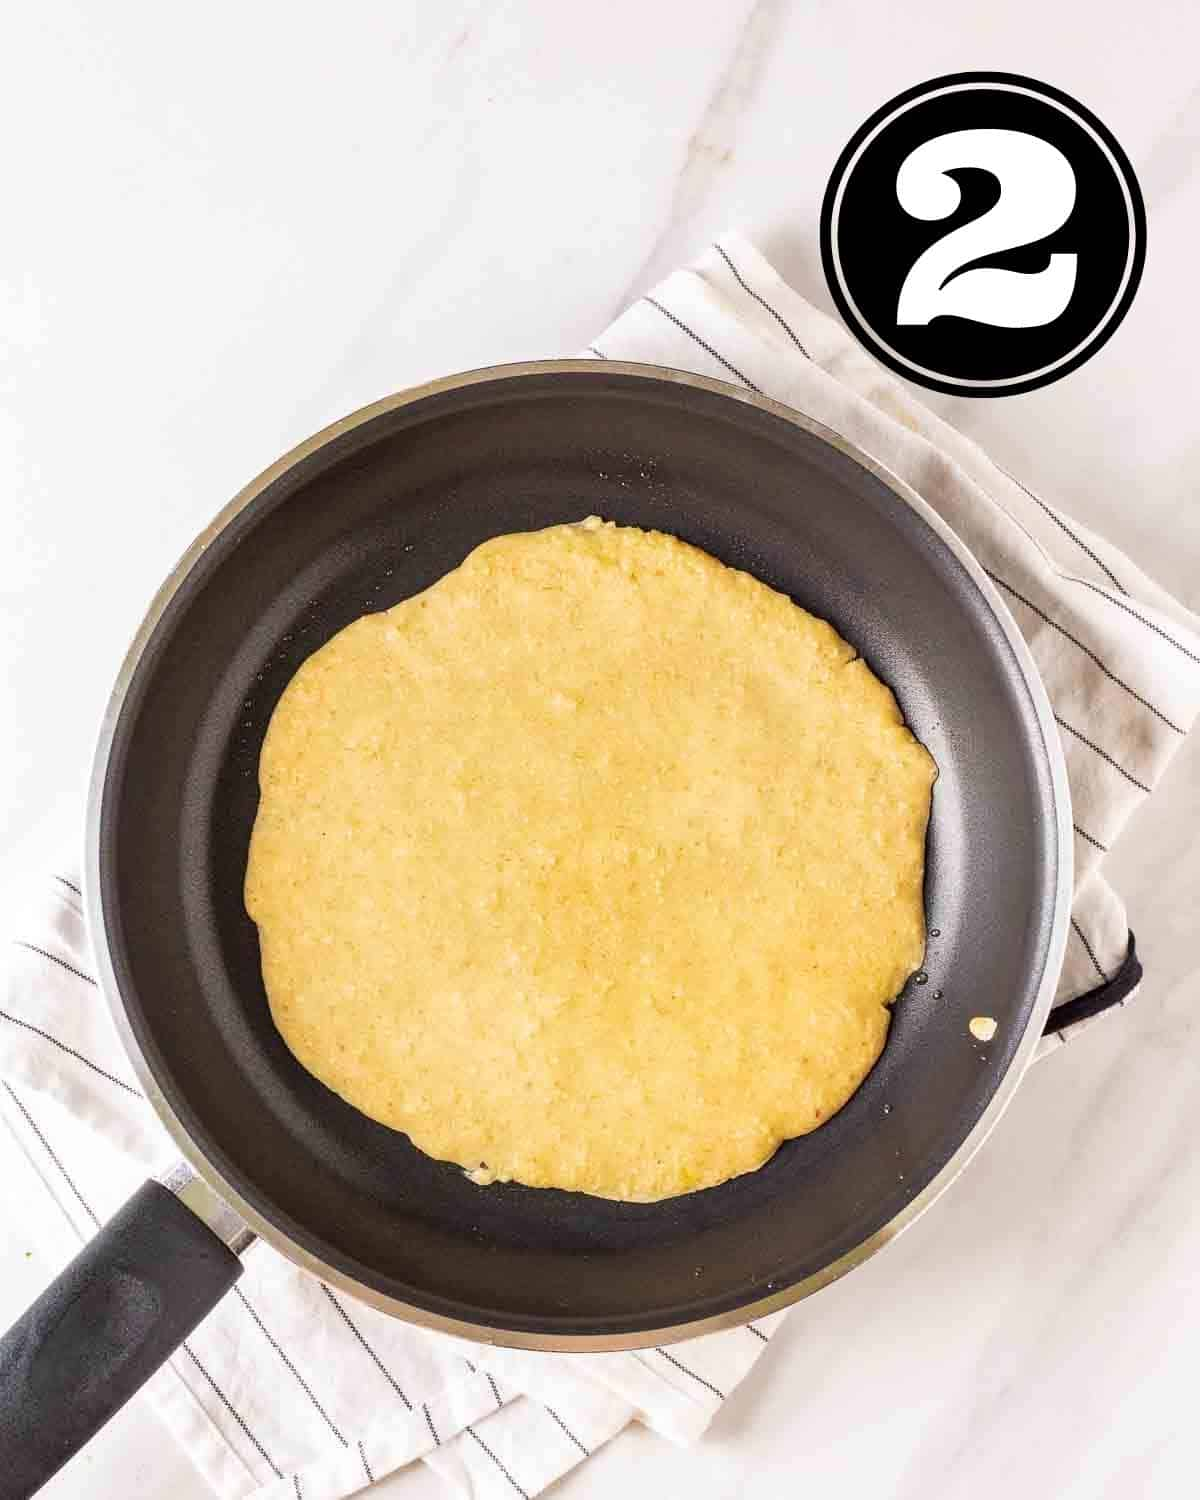 Cooking crepes in a black pan on a white teacloth.